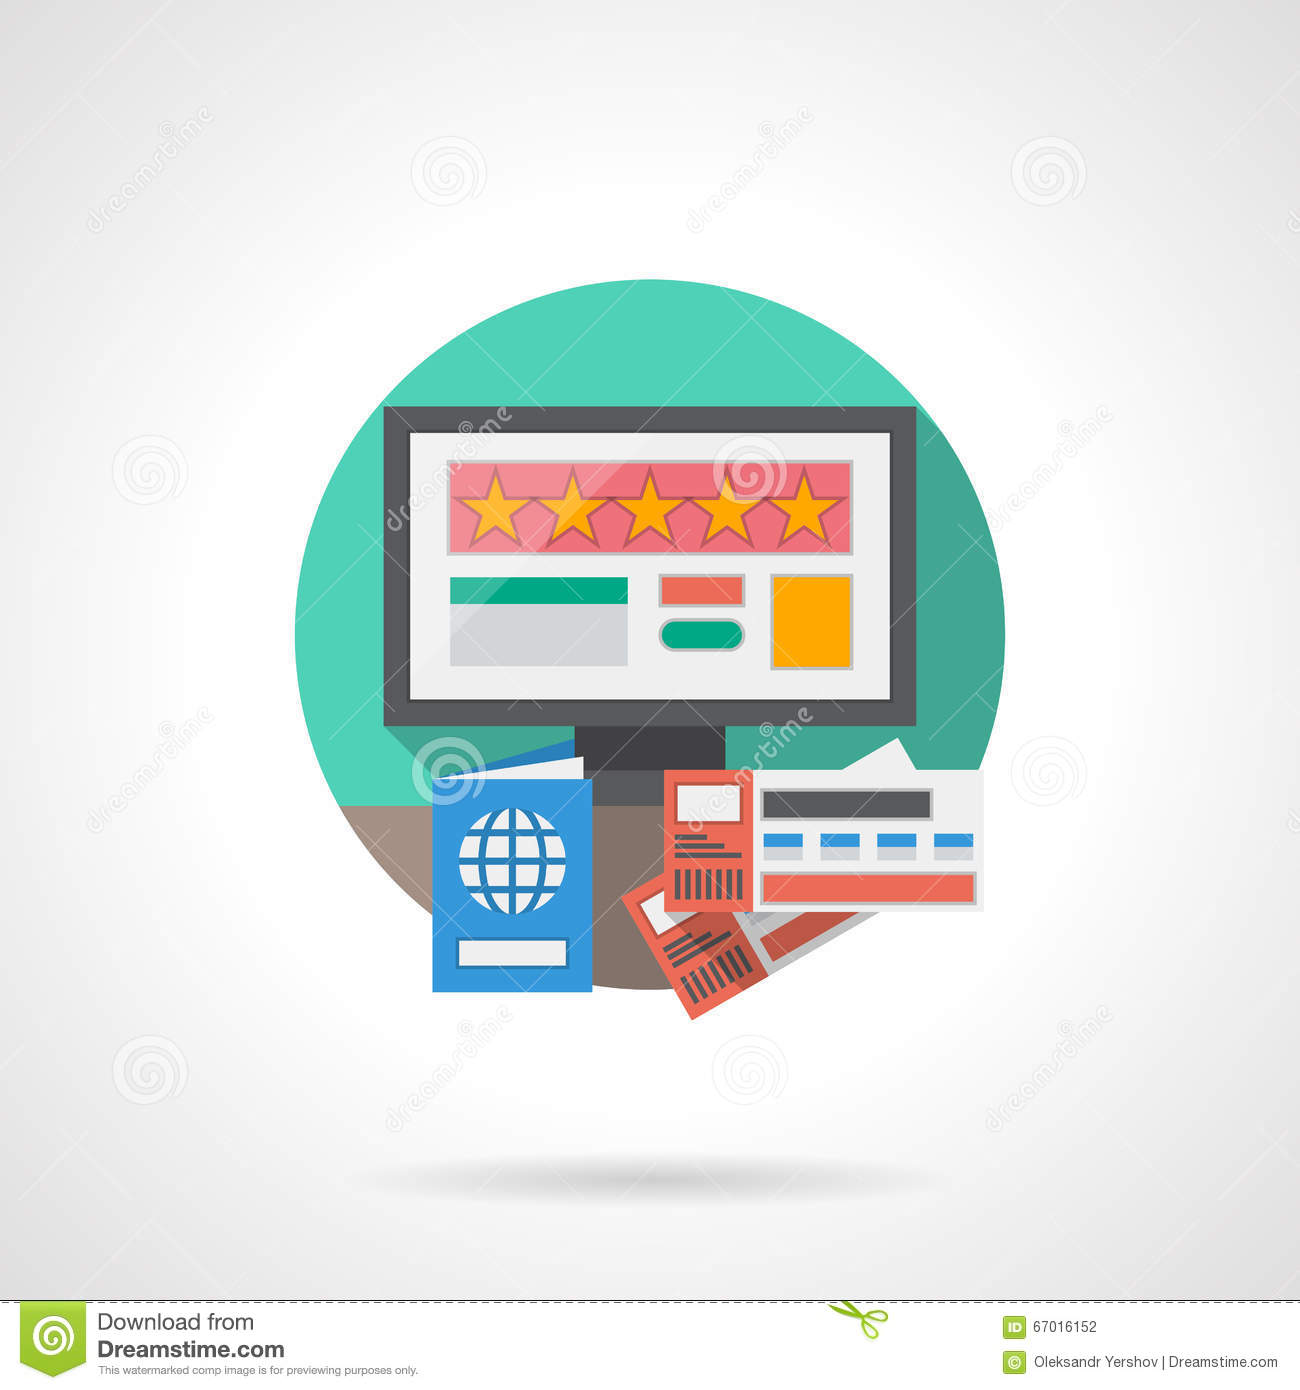 Online hotel detailed flat color icon stock illustration for Ideal hotel design booking